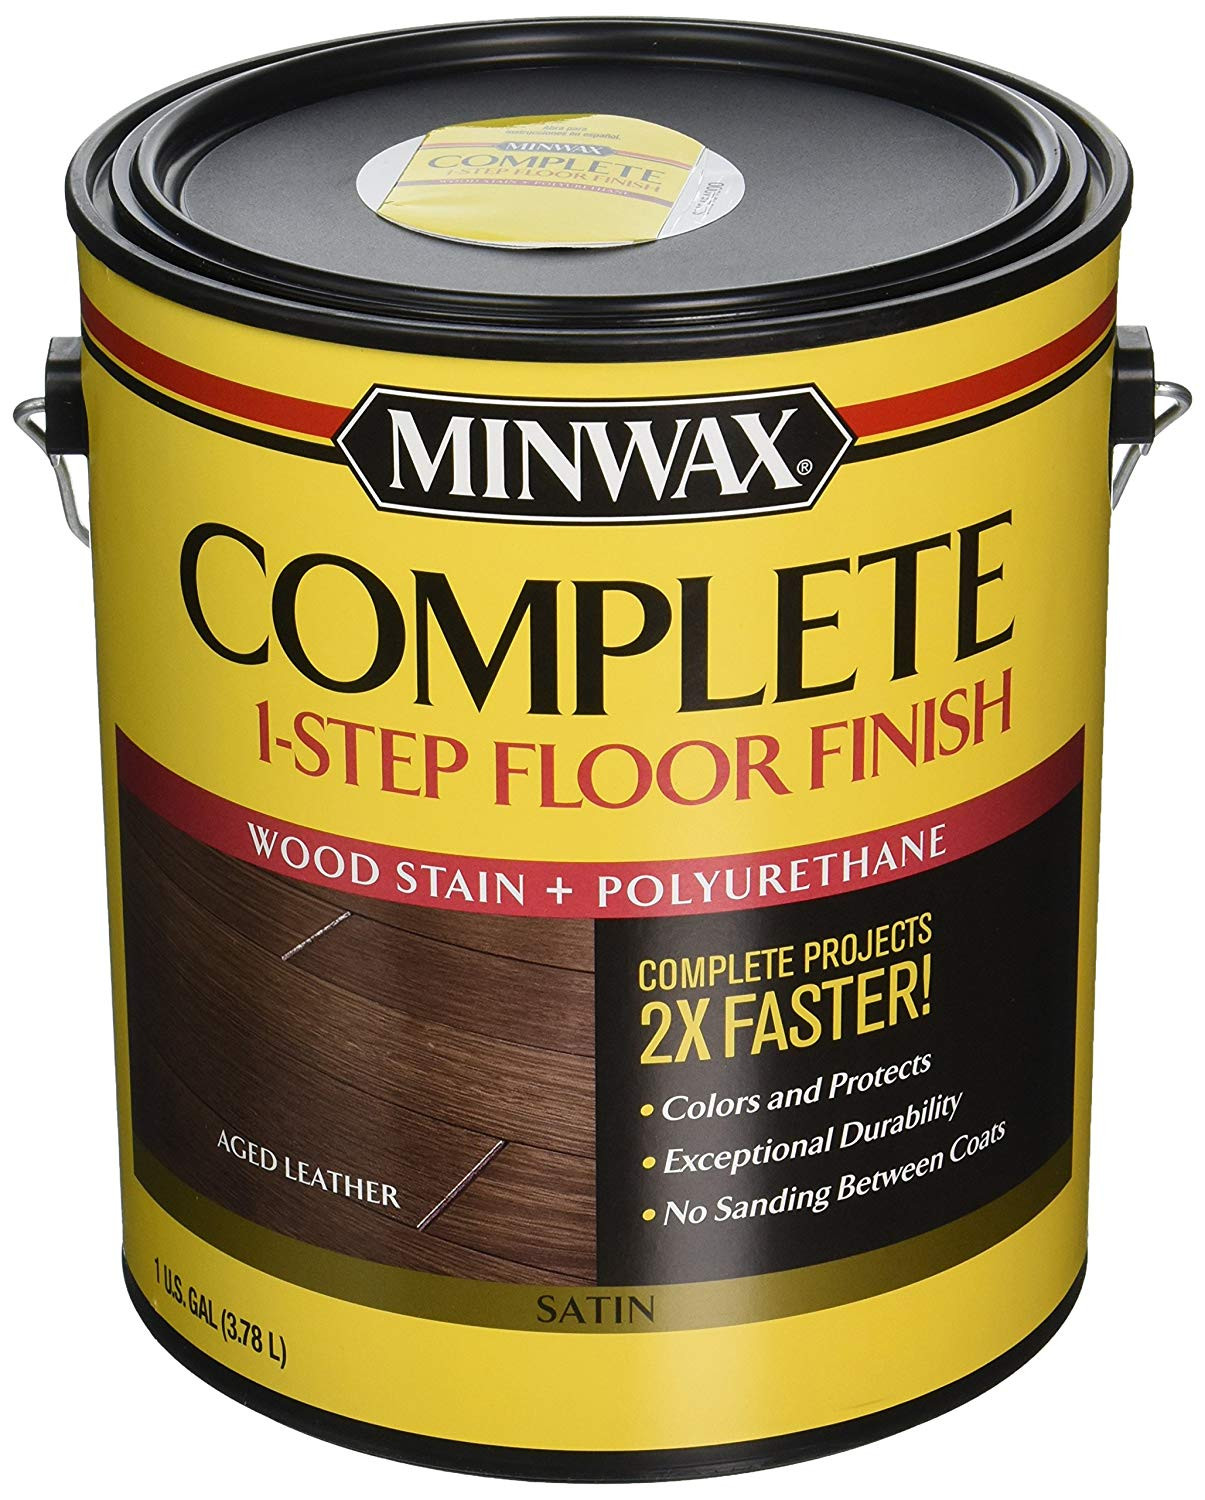 Hardwood Floor Color Chart Of Minwax 672050000 67205 1g Satin Aged Leather Complete 1 Step Floor with Minwax 672050000 67205 1g Satin Aged Leather Complete 1 Step Floor Finish Amazon Com